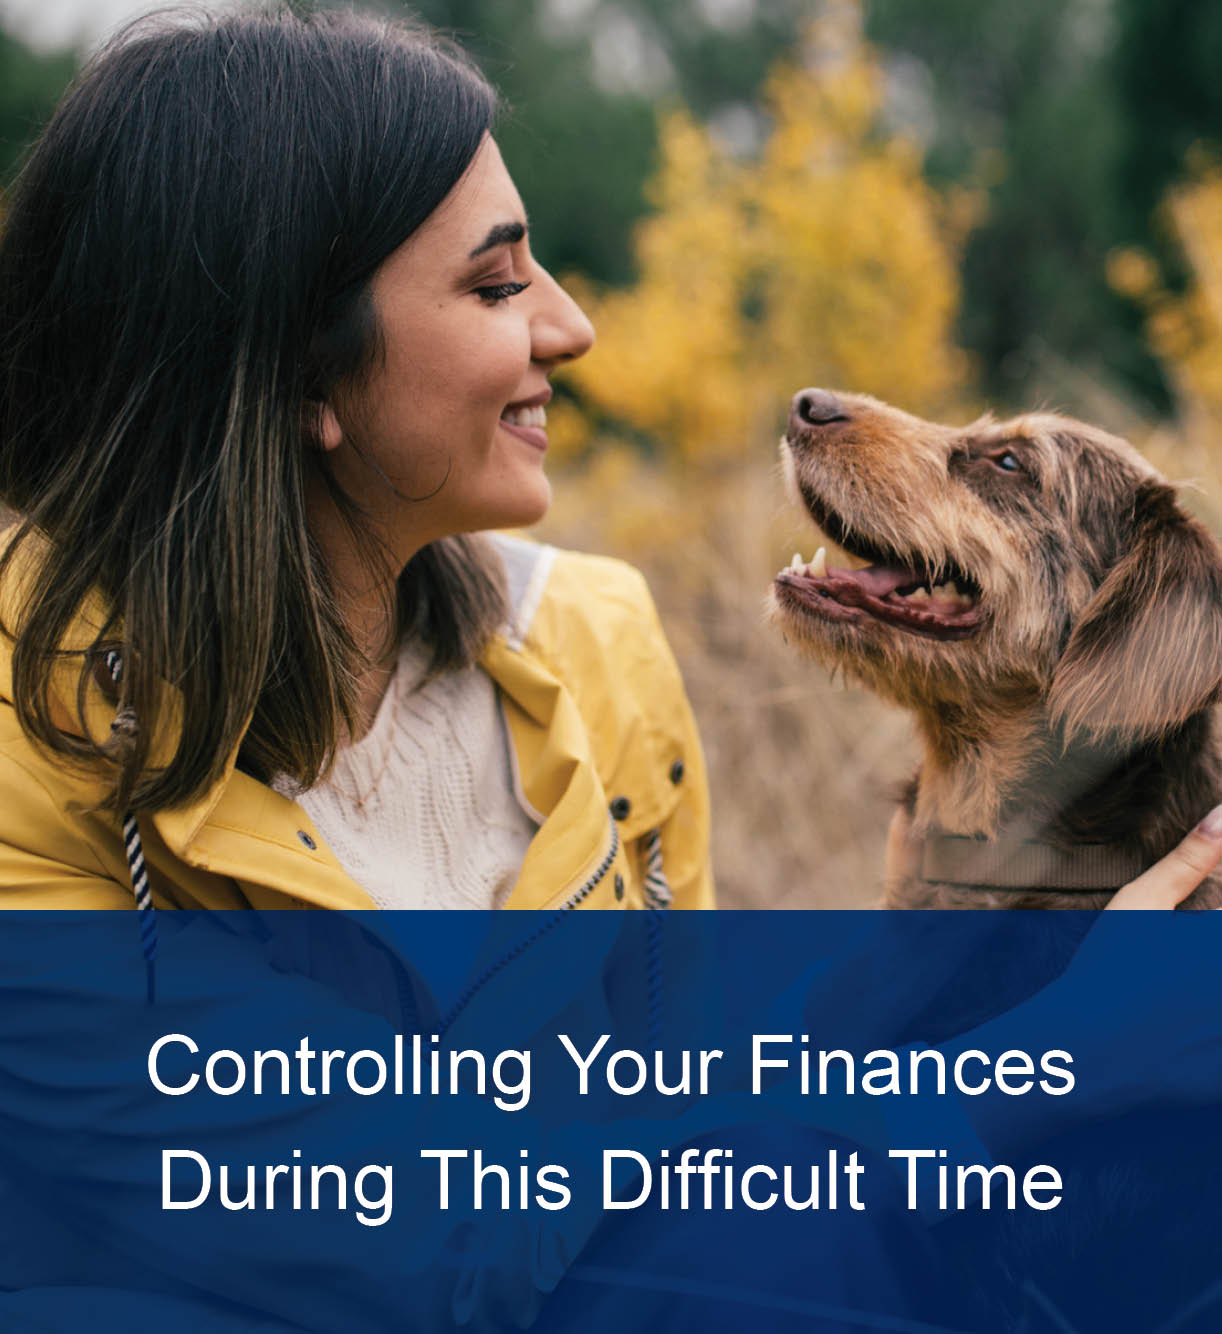 thumbnail for controlling your finances article